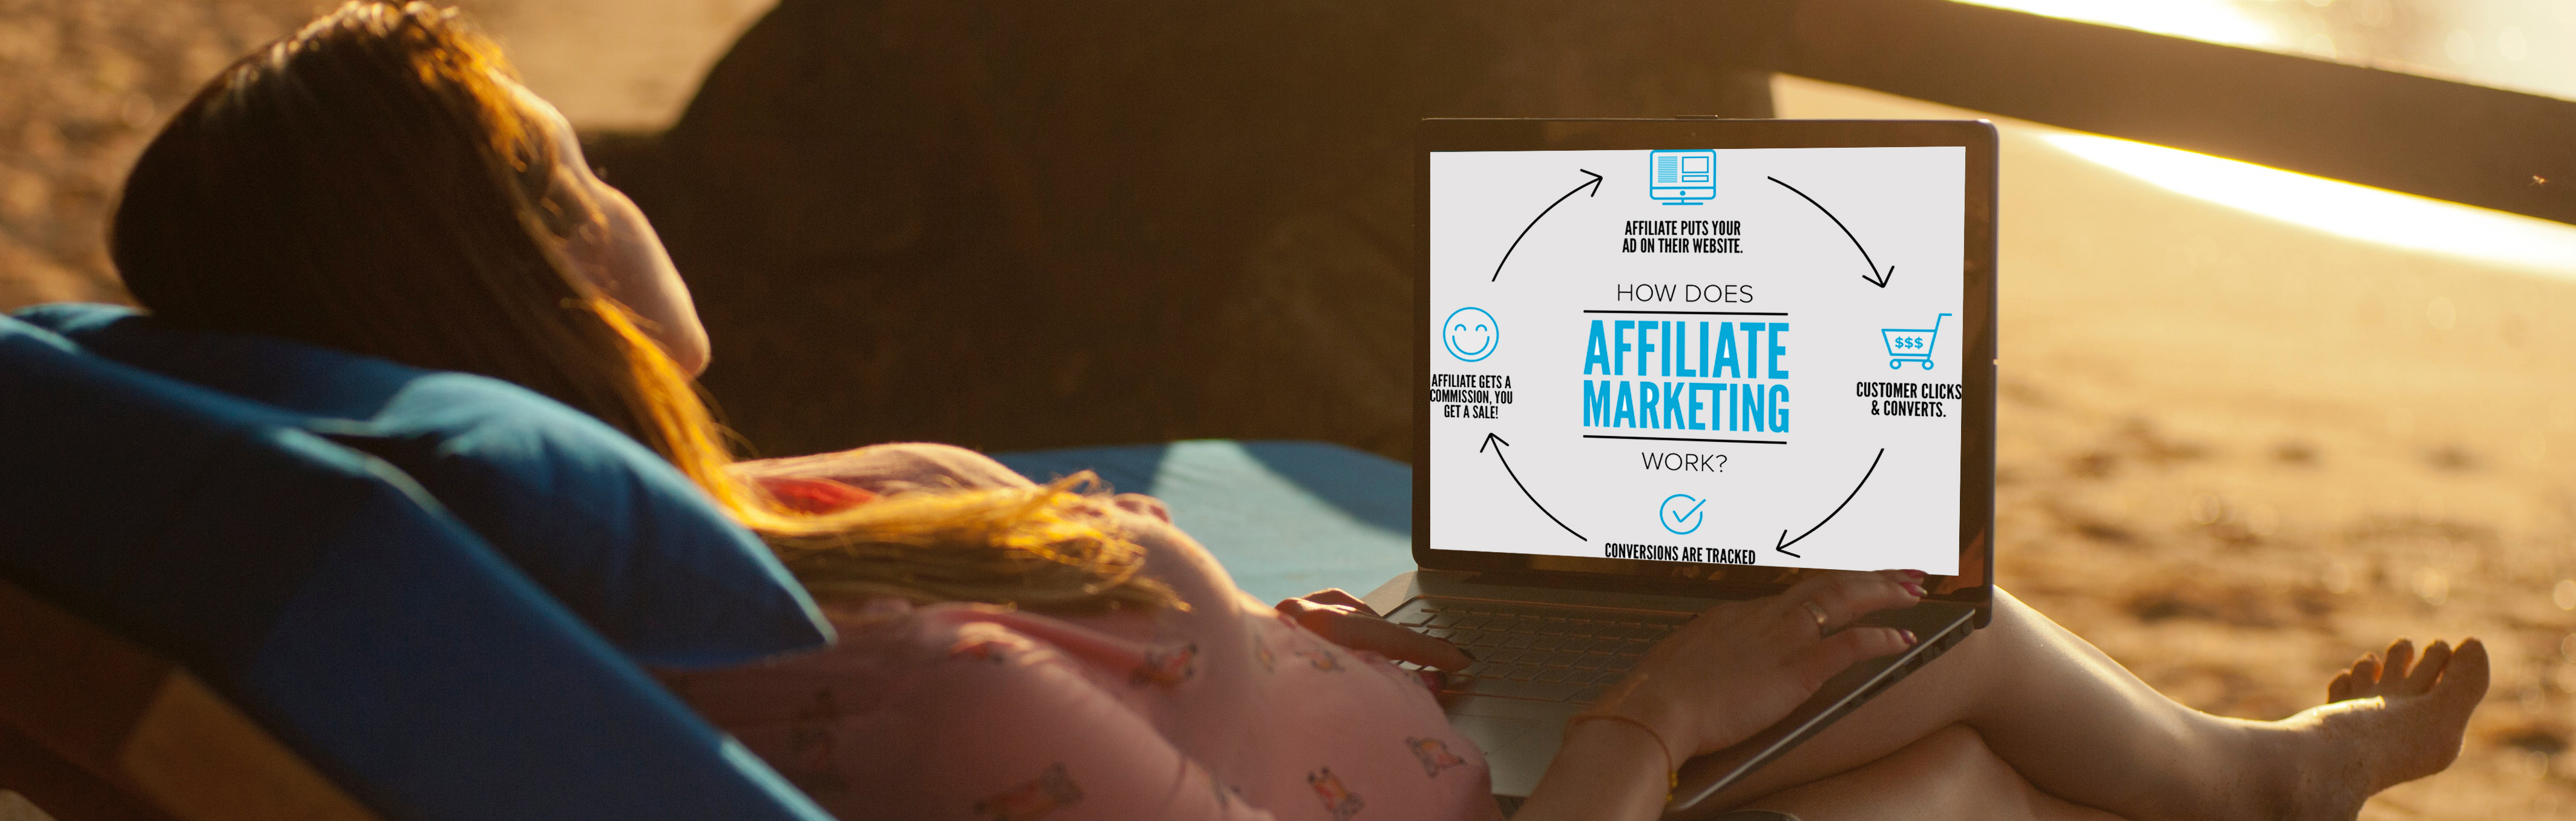 have the freedom to work from anywhere with affiliate marketing